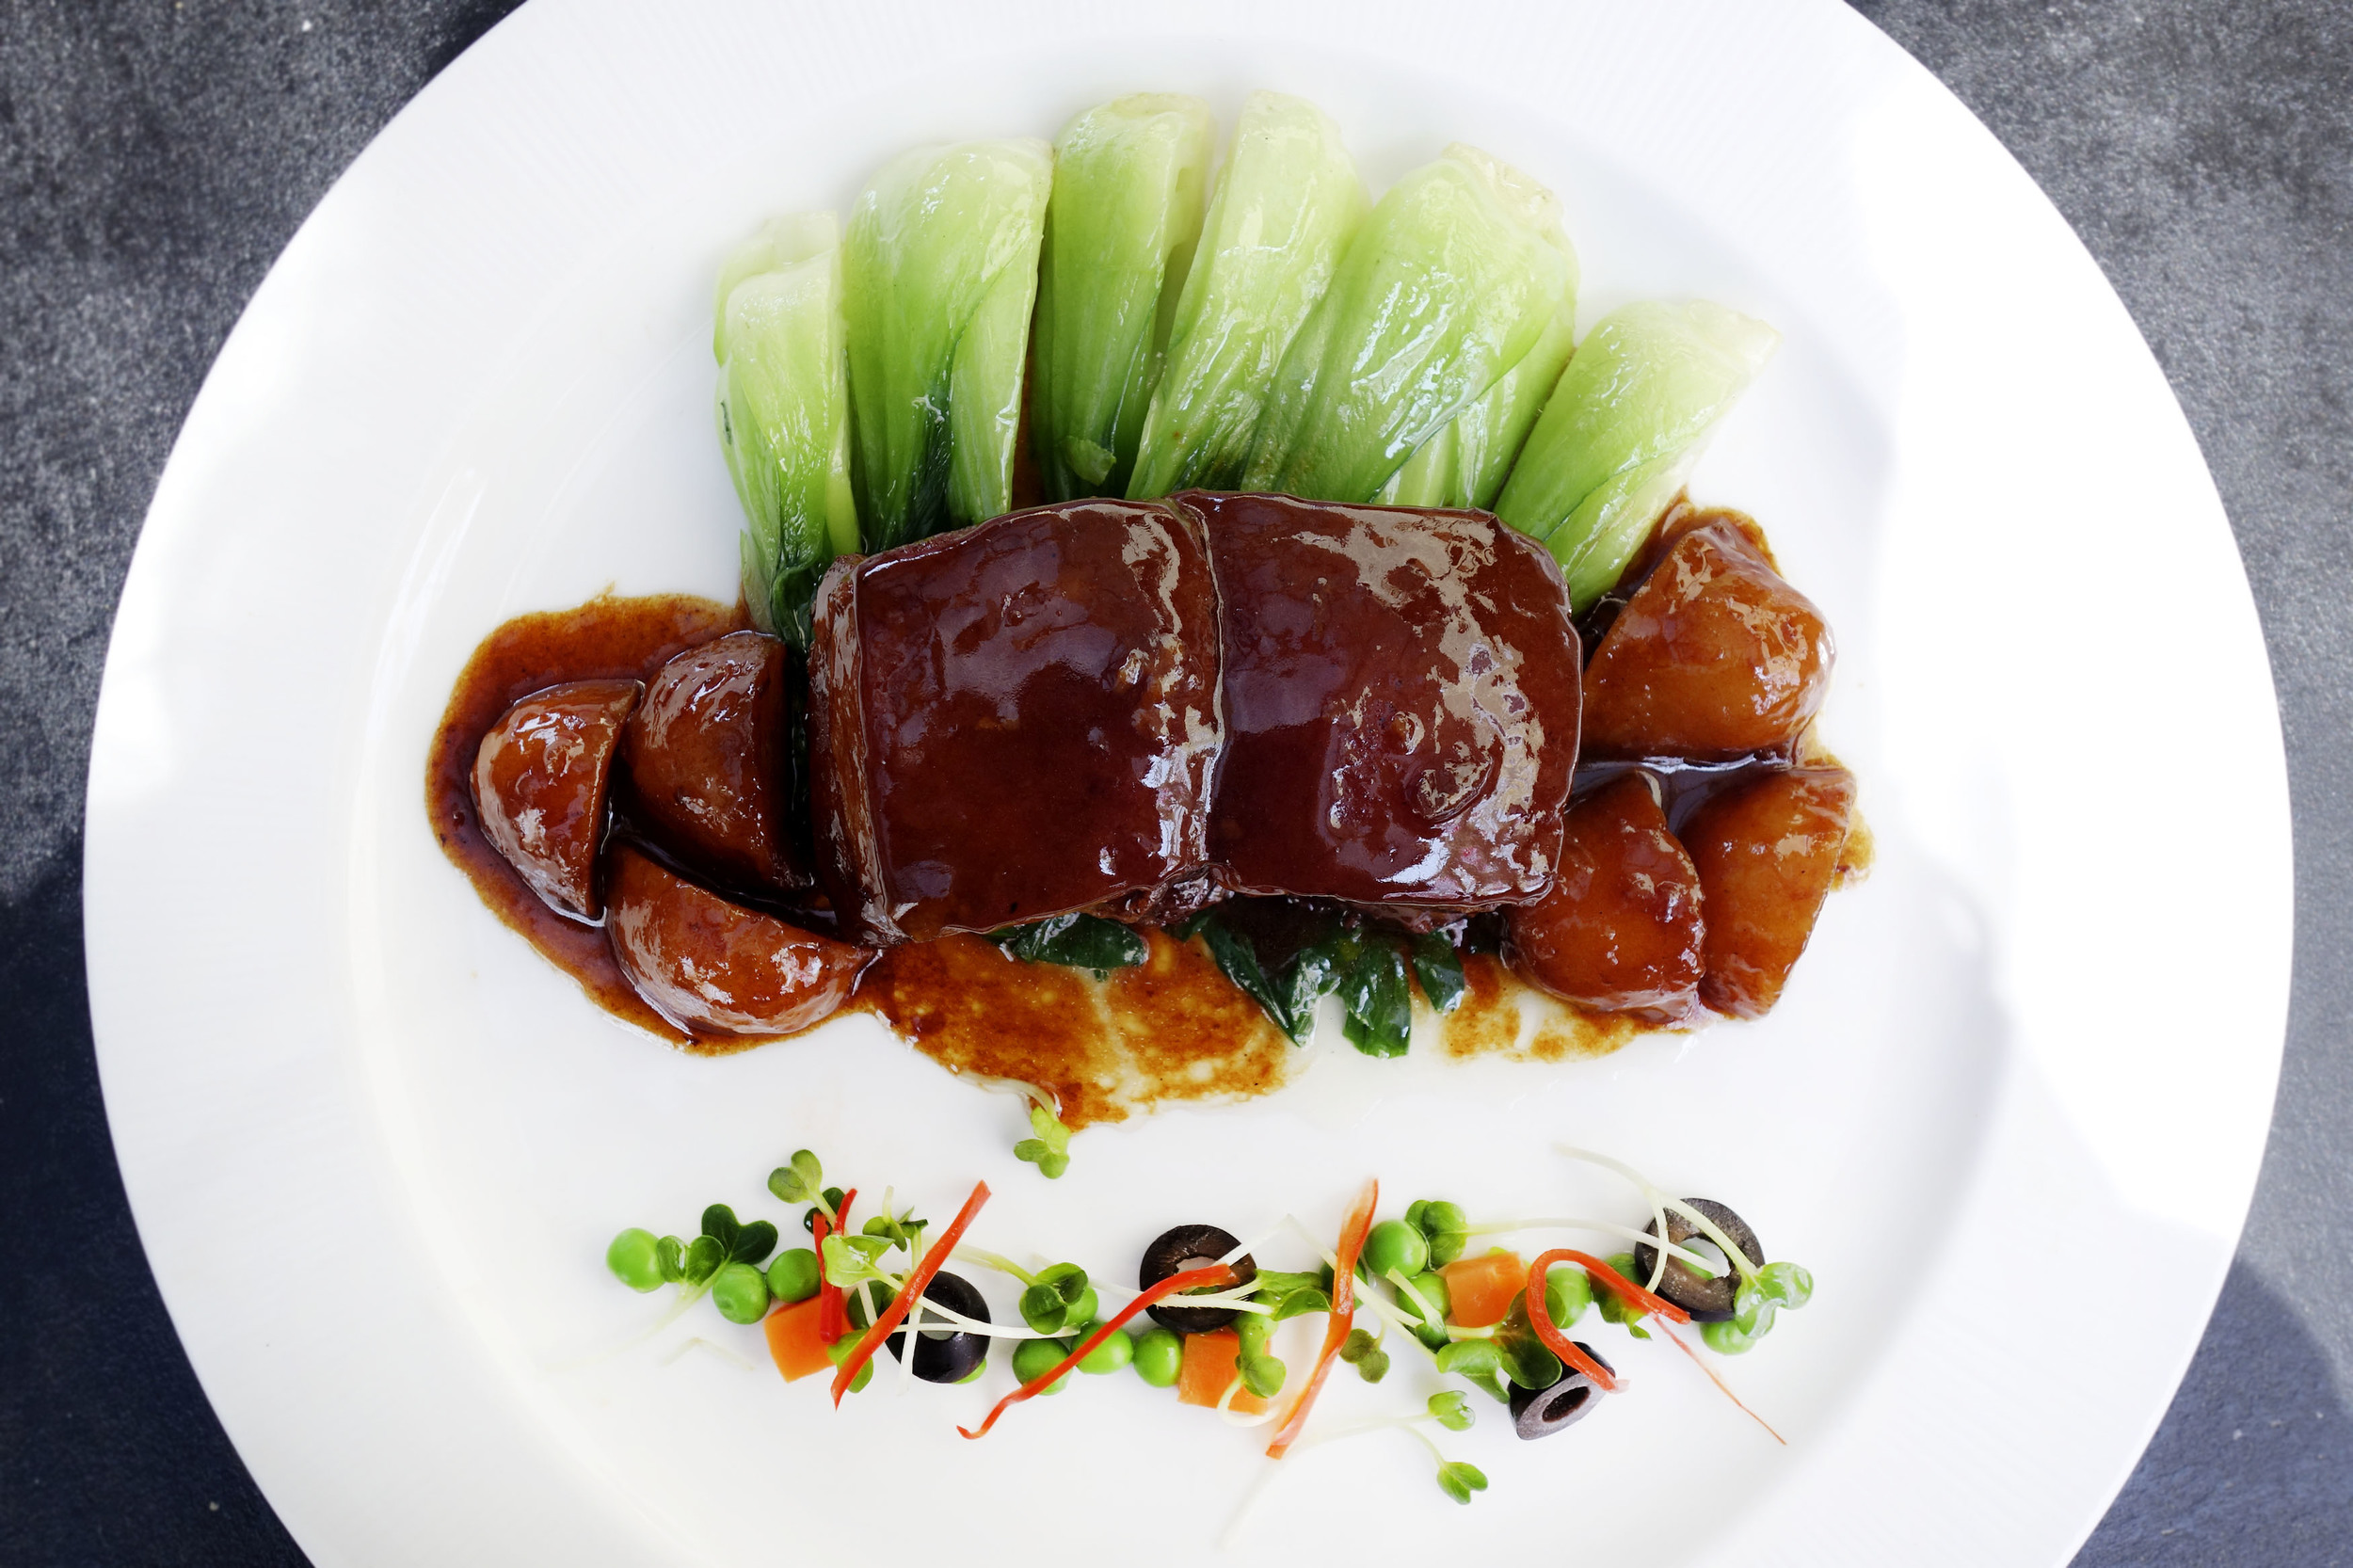 Braised Pork belly with sweet soy sauce